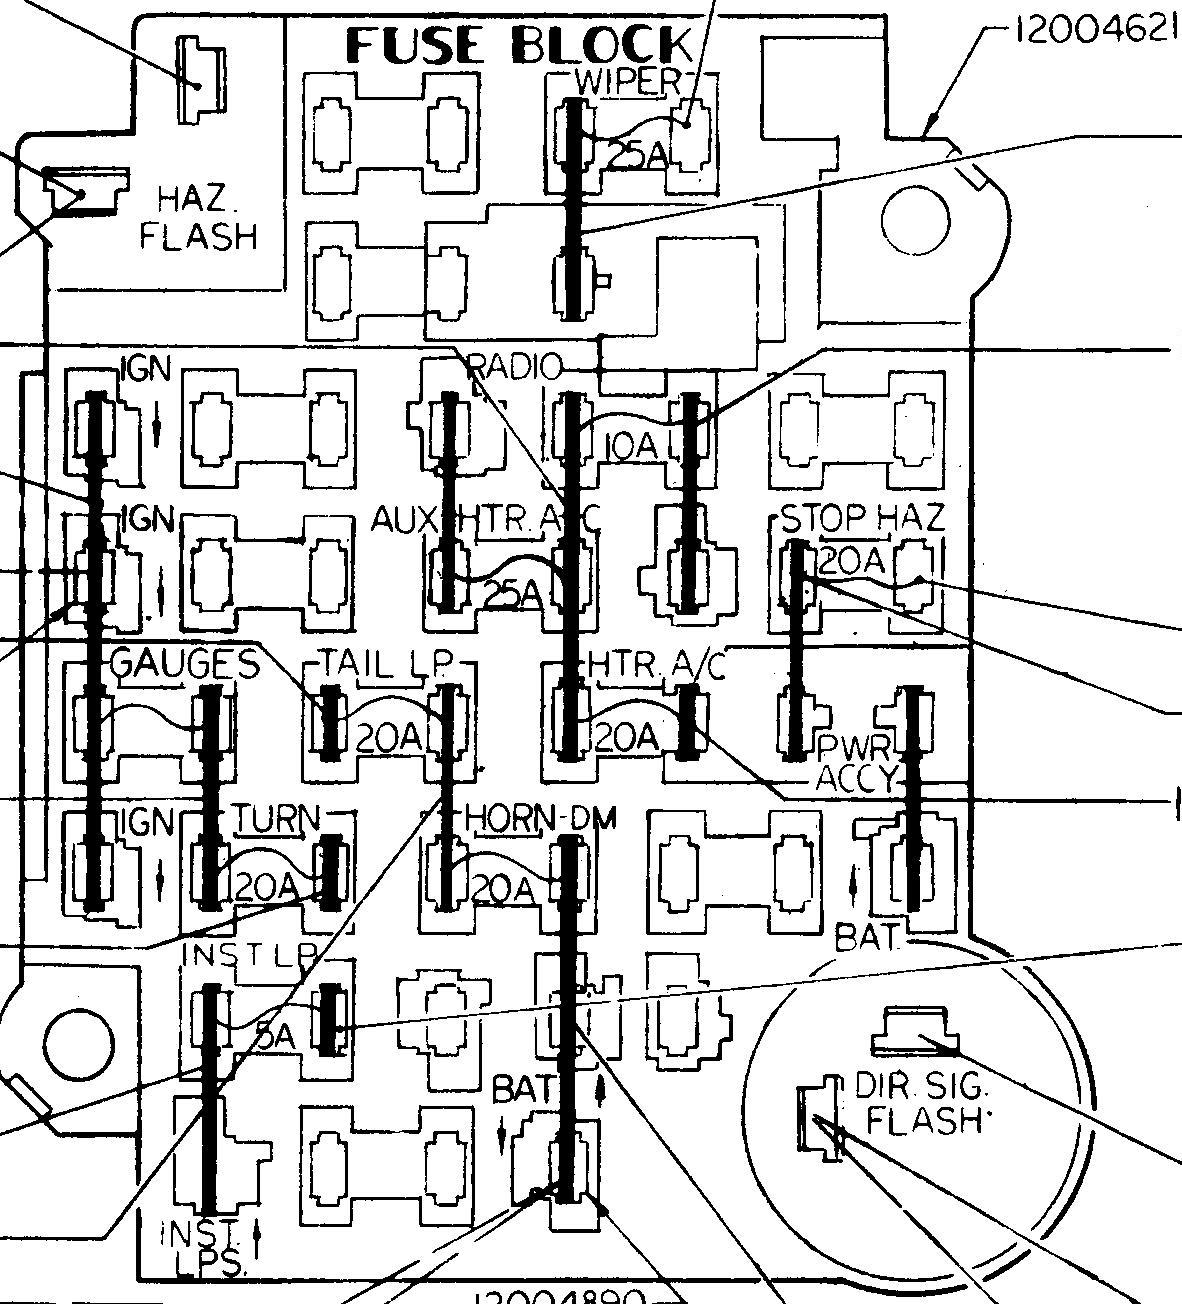 hight resolution of c10 fuse box schematic wiring diagrams 85 chevy hood ornament 1979 chevy truck fuse box diagram